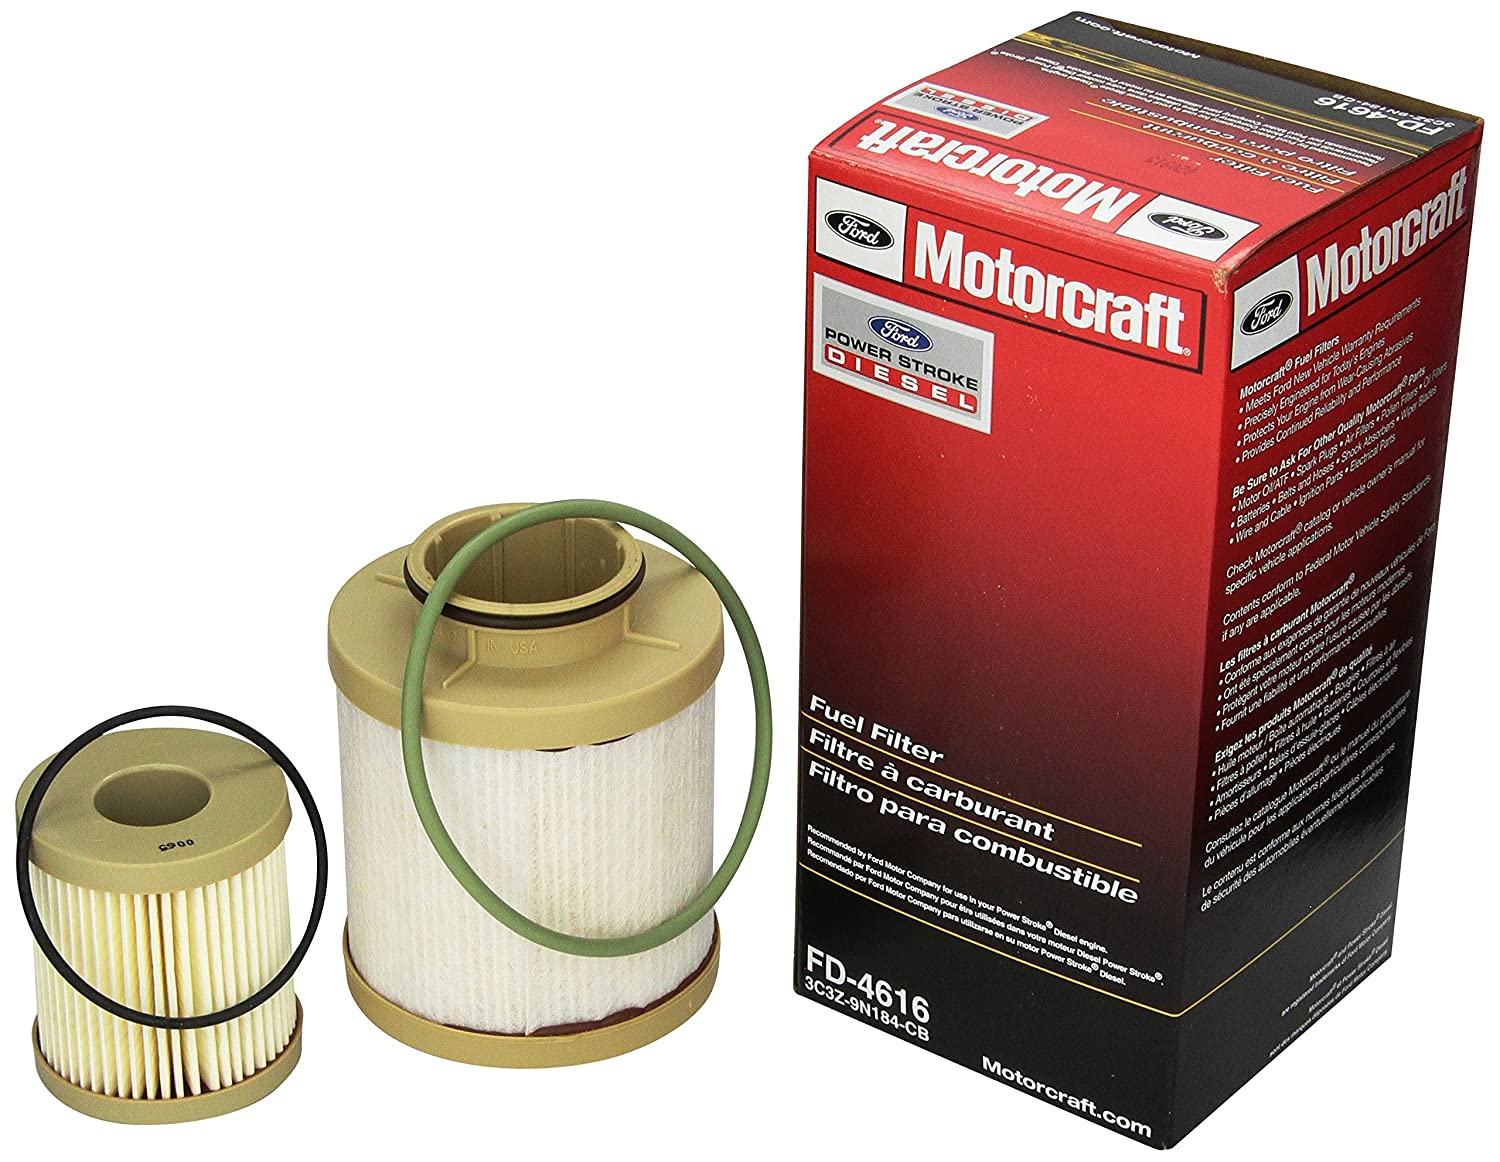 Motorcraft Fd 4616 Fuel Filter Automotive Re Filters Diesel